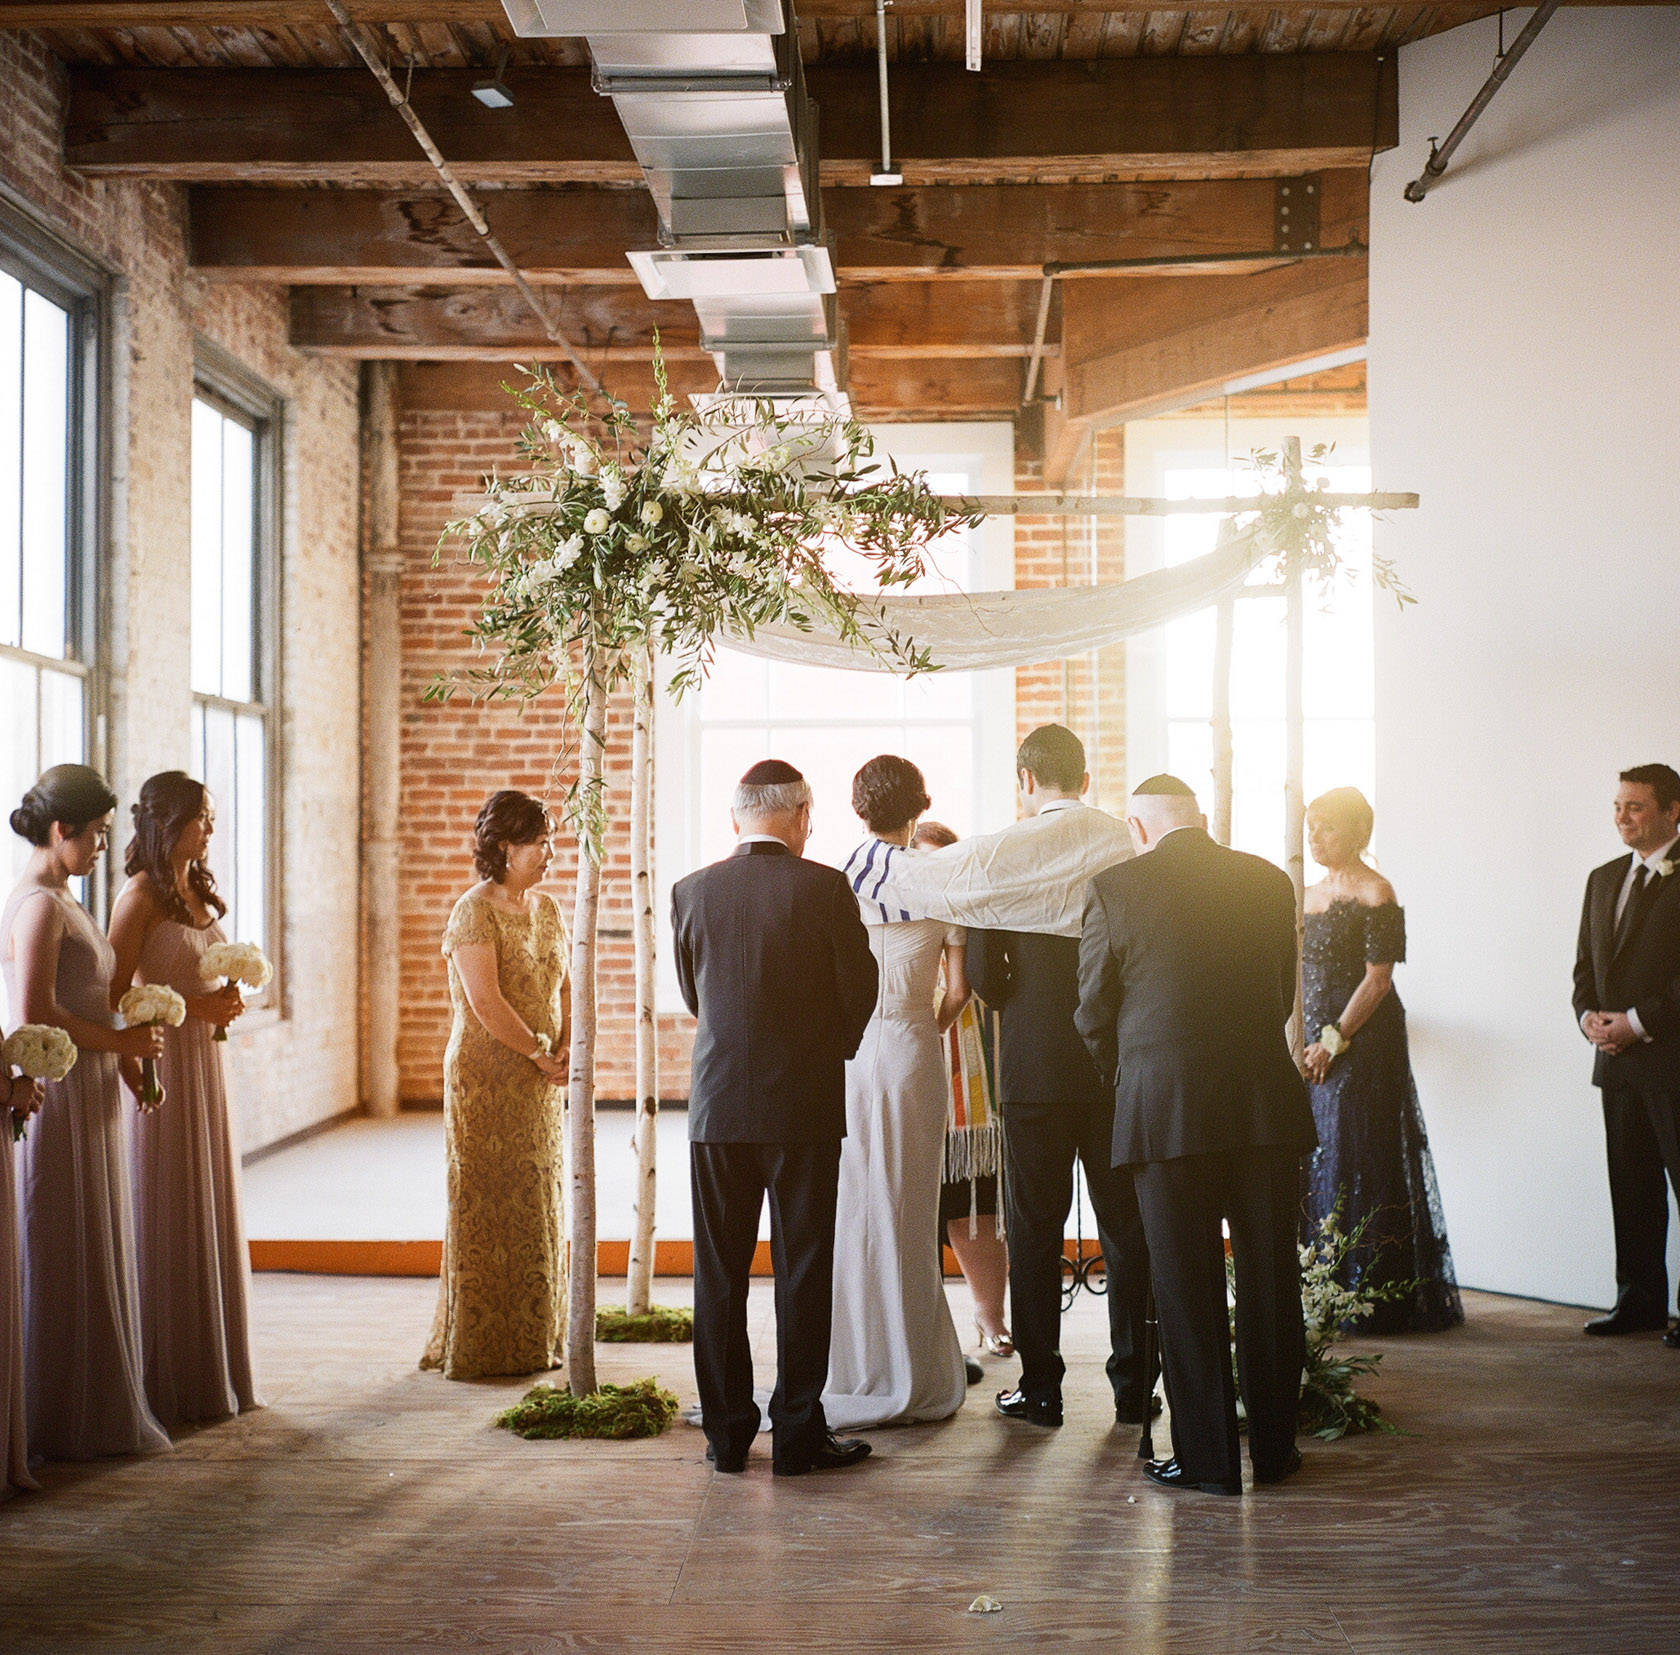 new orleans wedding ceremony on film at cac - 06